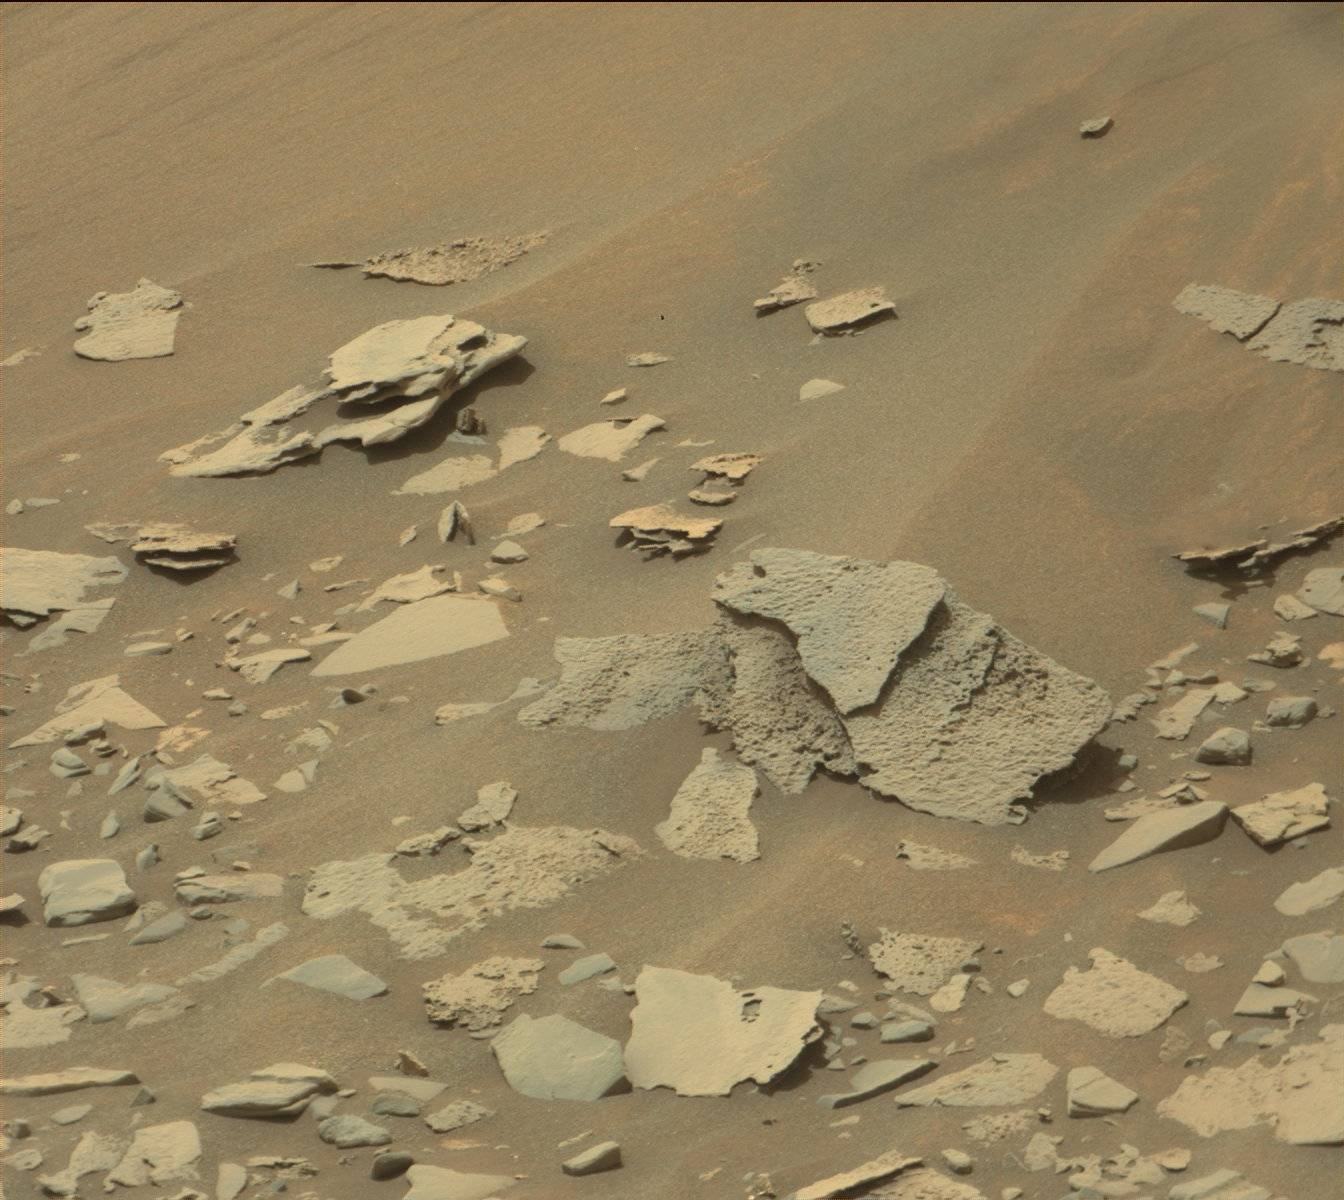 Nasa's Mars rover Curiosity acquired this image using its Mast Camera (Mastcam) on Sol 969